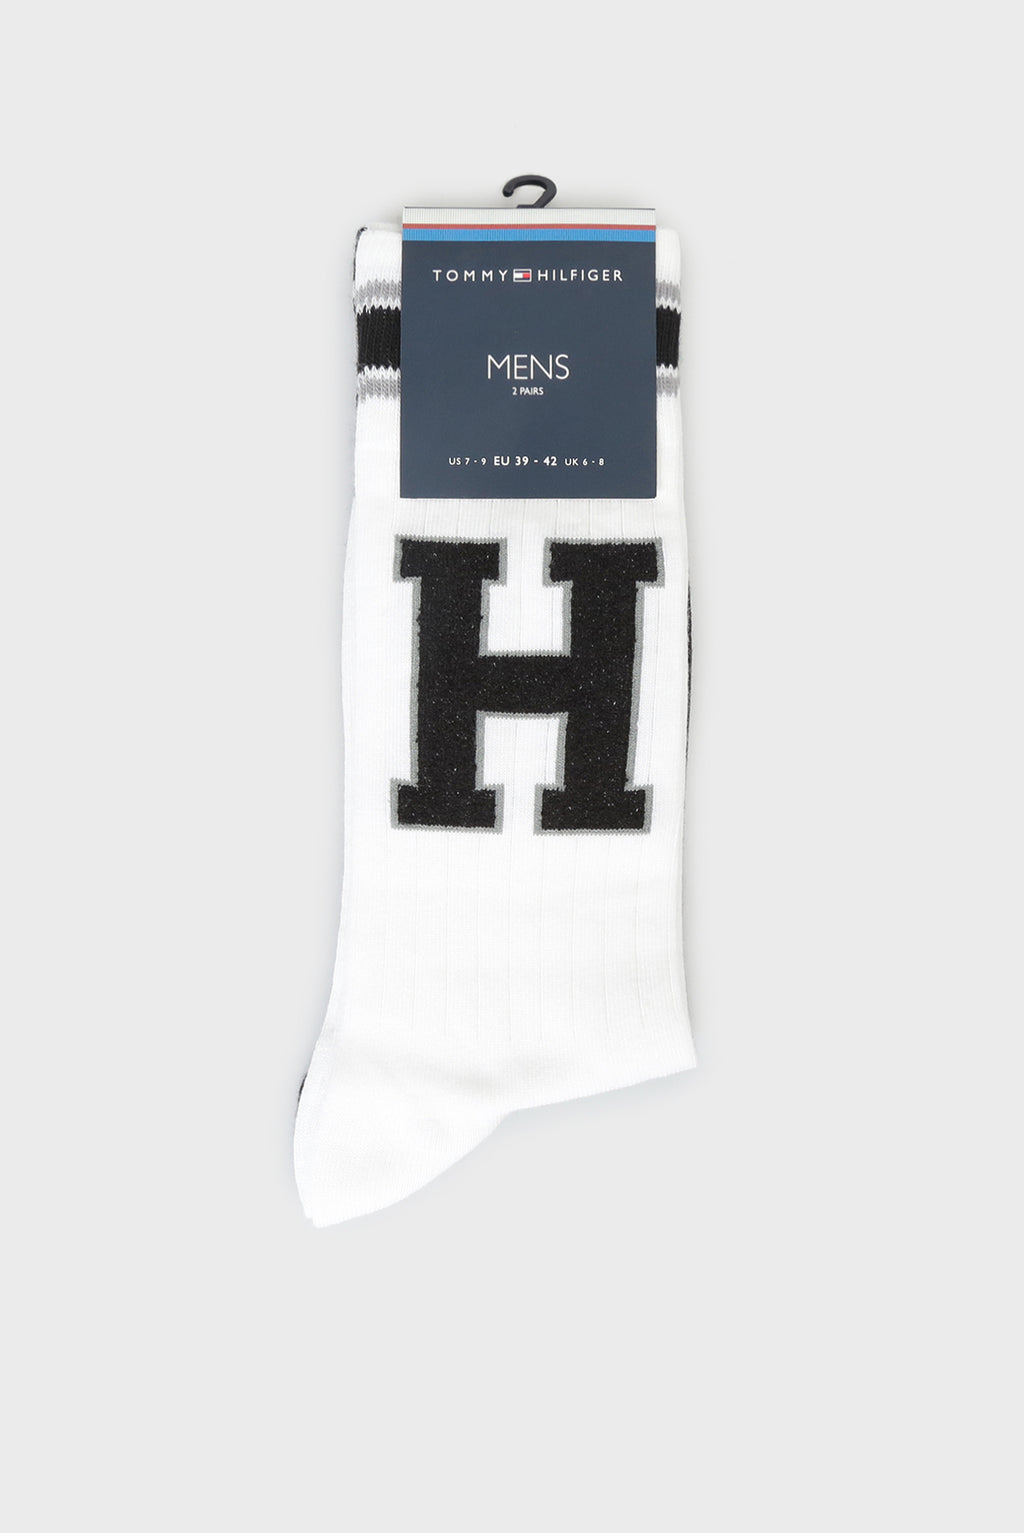 Tommy Hilfiger TH Patch White Socks - 2 Pack